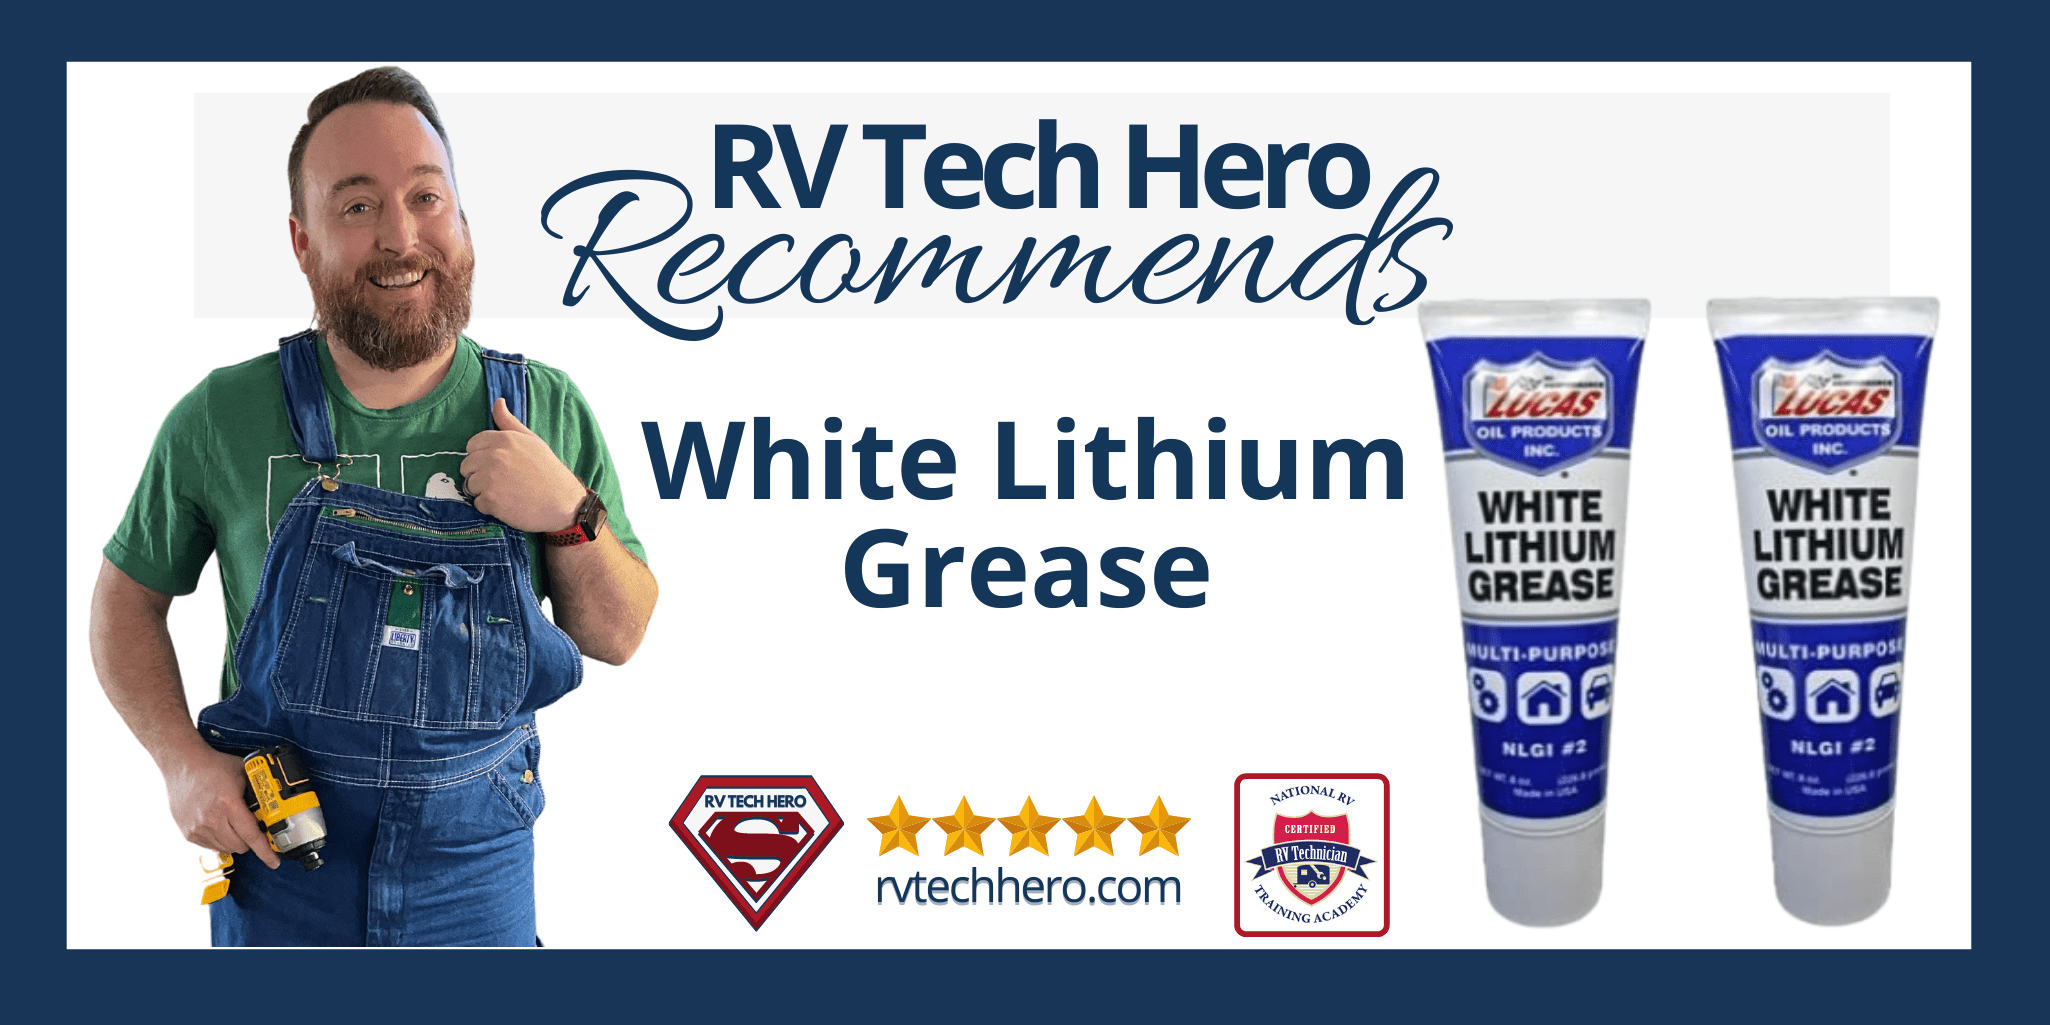 RV Tech Hero Recommends White Lithium Grease